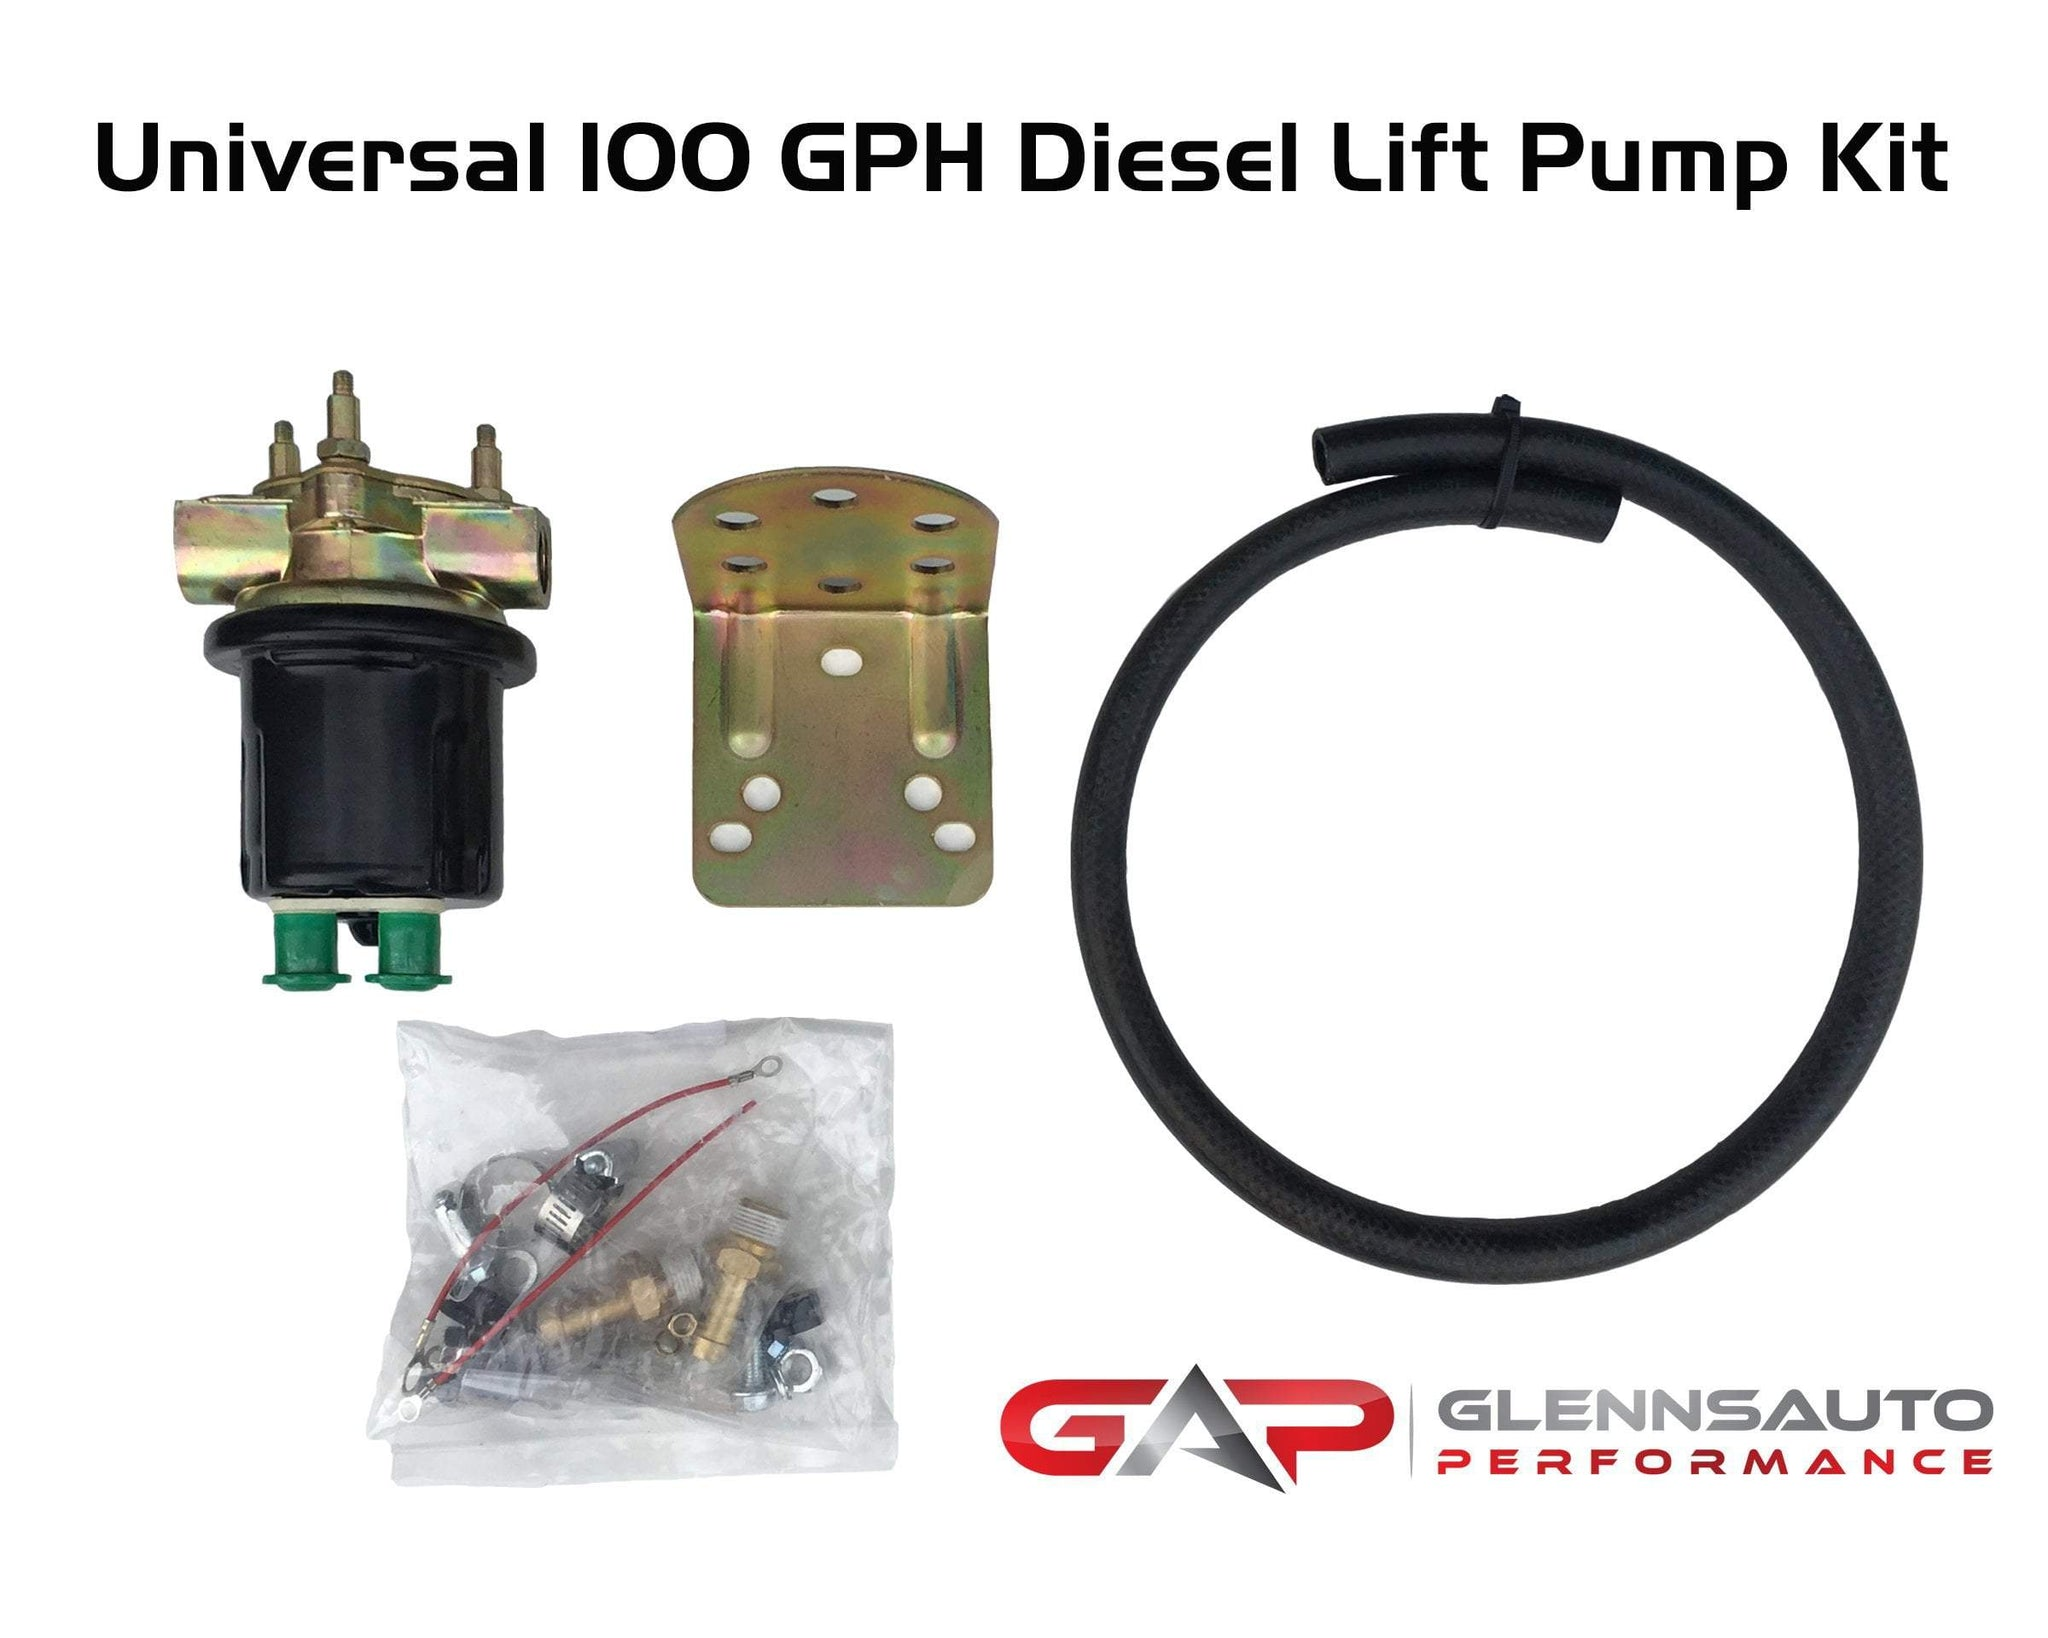 Universal High Volume Diesel Lift Pump or Auxiliary Lift Pump Kit - 100GPH